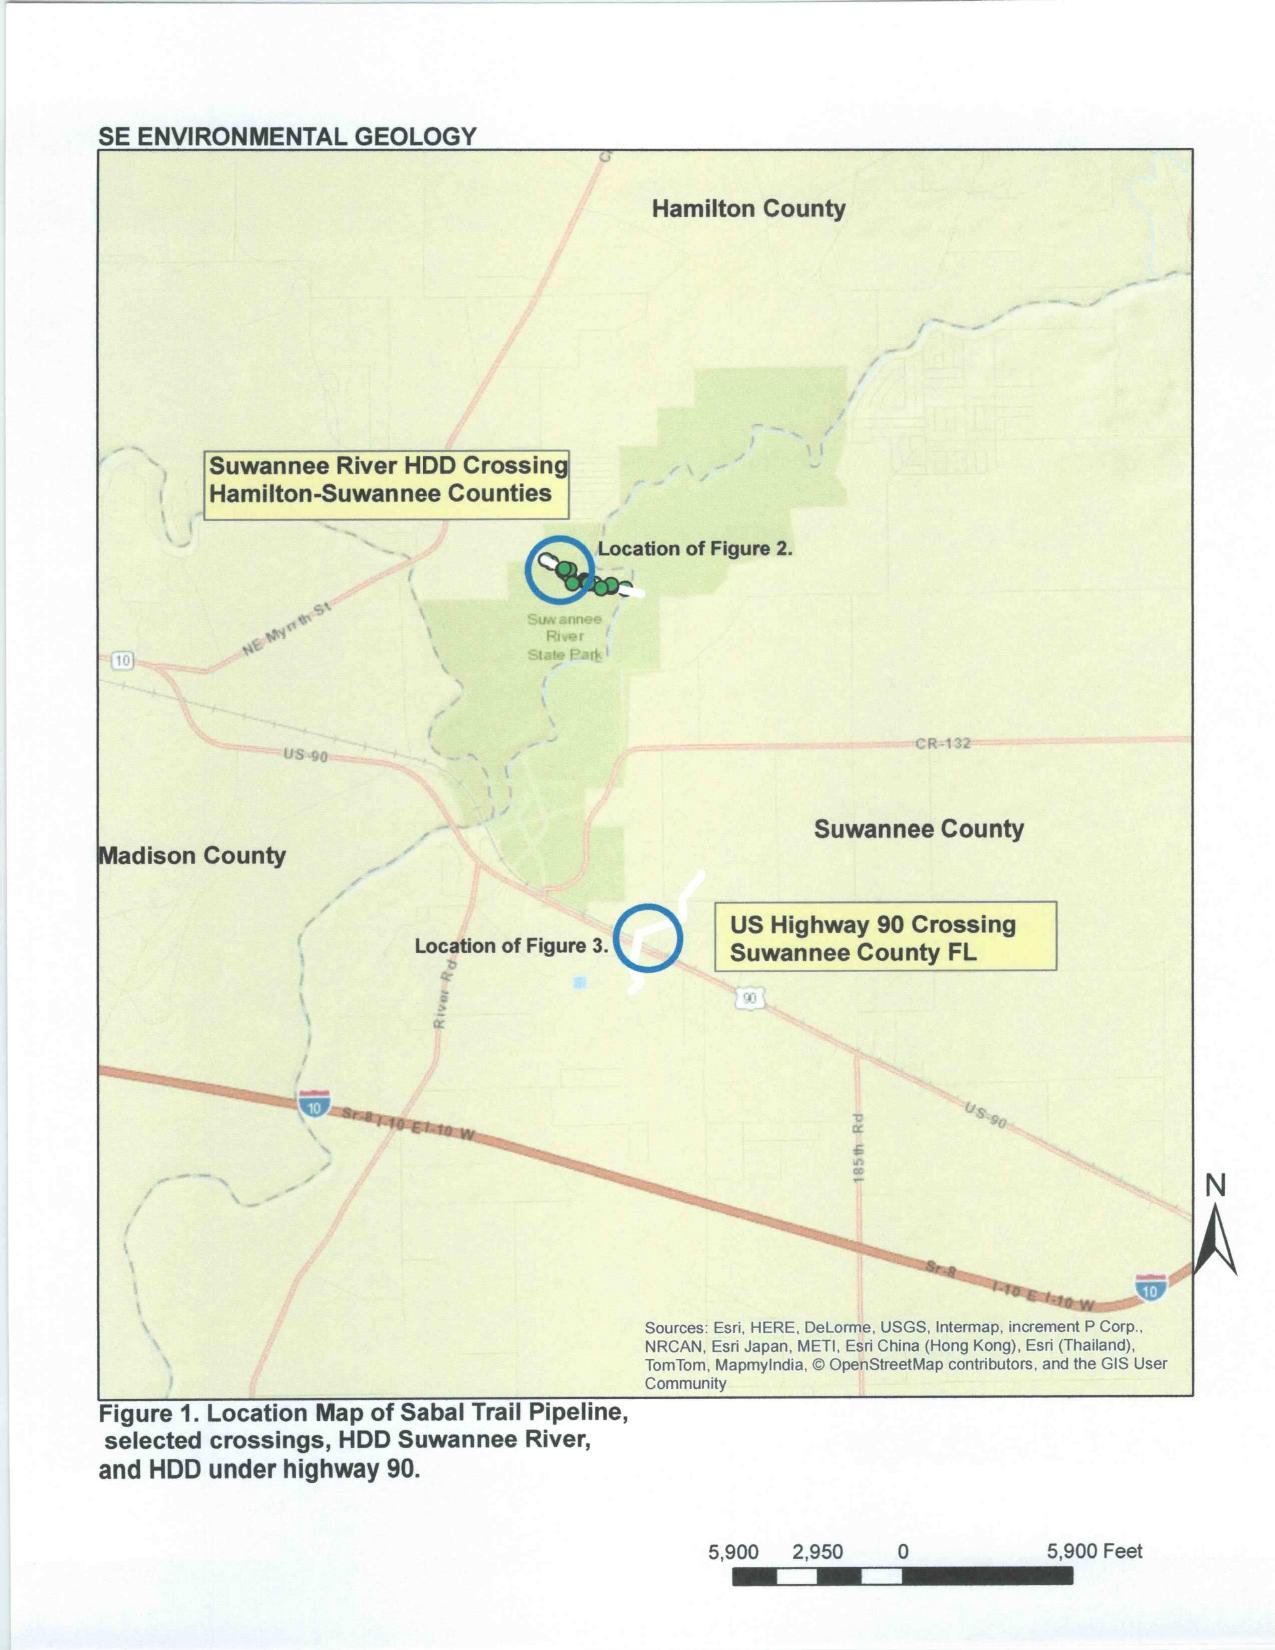 1275x1650 Figure 1. Location Map of Sabal Trail Pipeline, in Geological determinations about Sabal Trail and Suwannee River, by Dennis Price, P.G., for WWALS.net, 25 October 2015